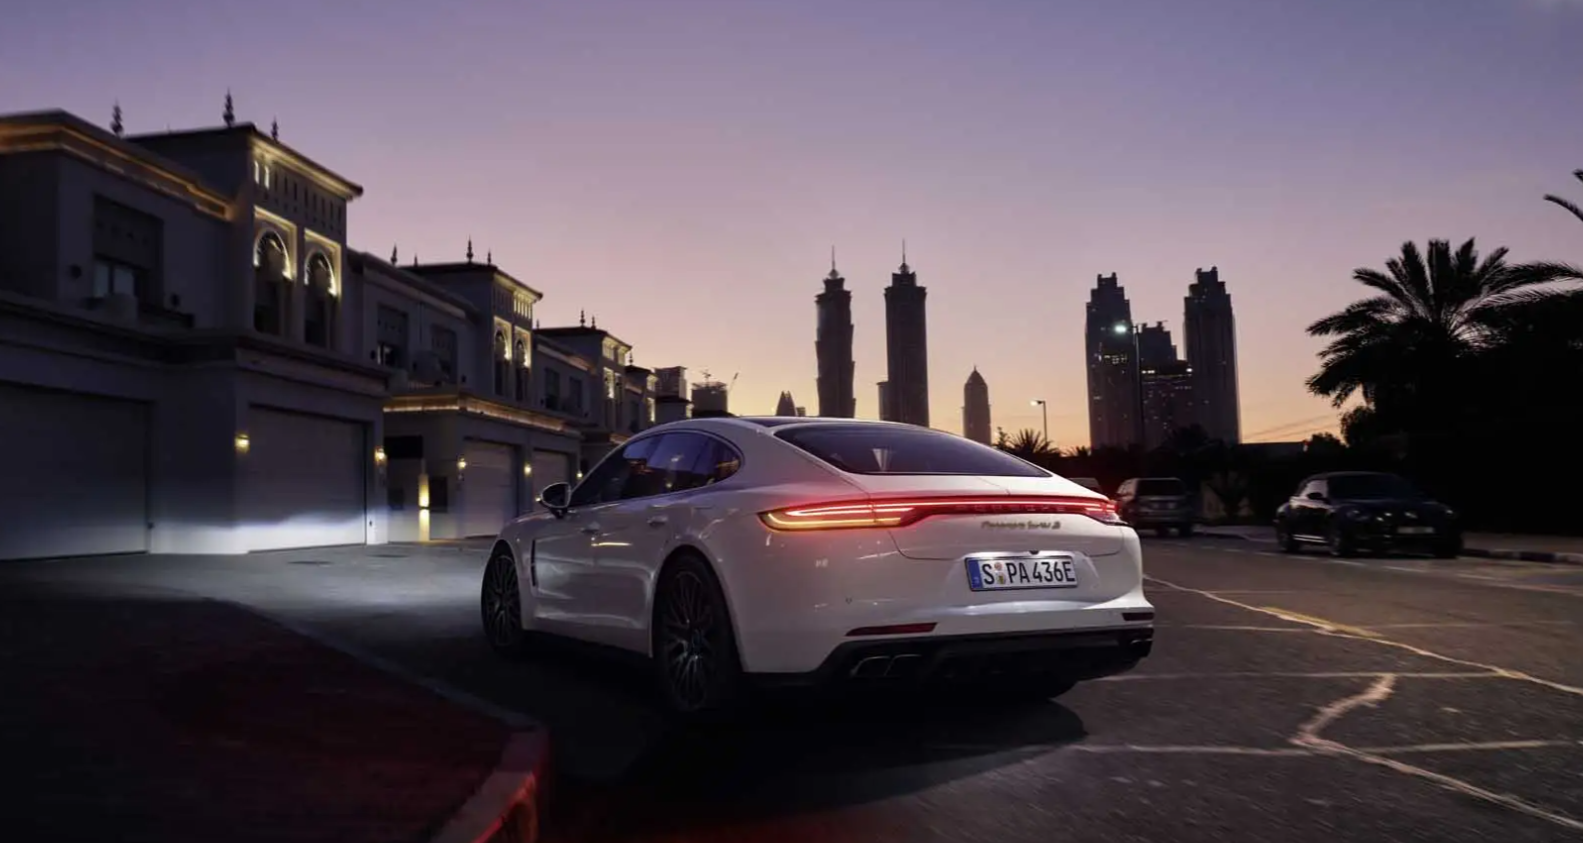 Click here to see the 2021 Porsche Panamera performance review and more.